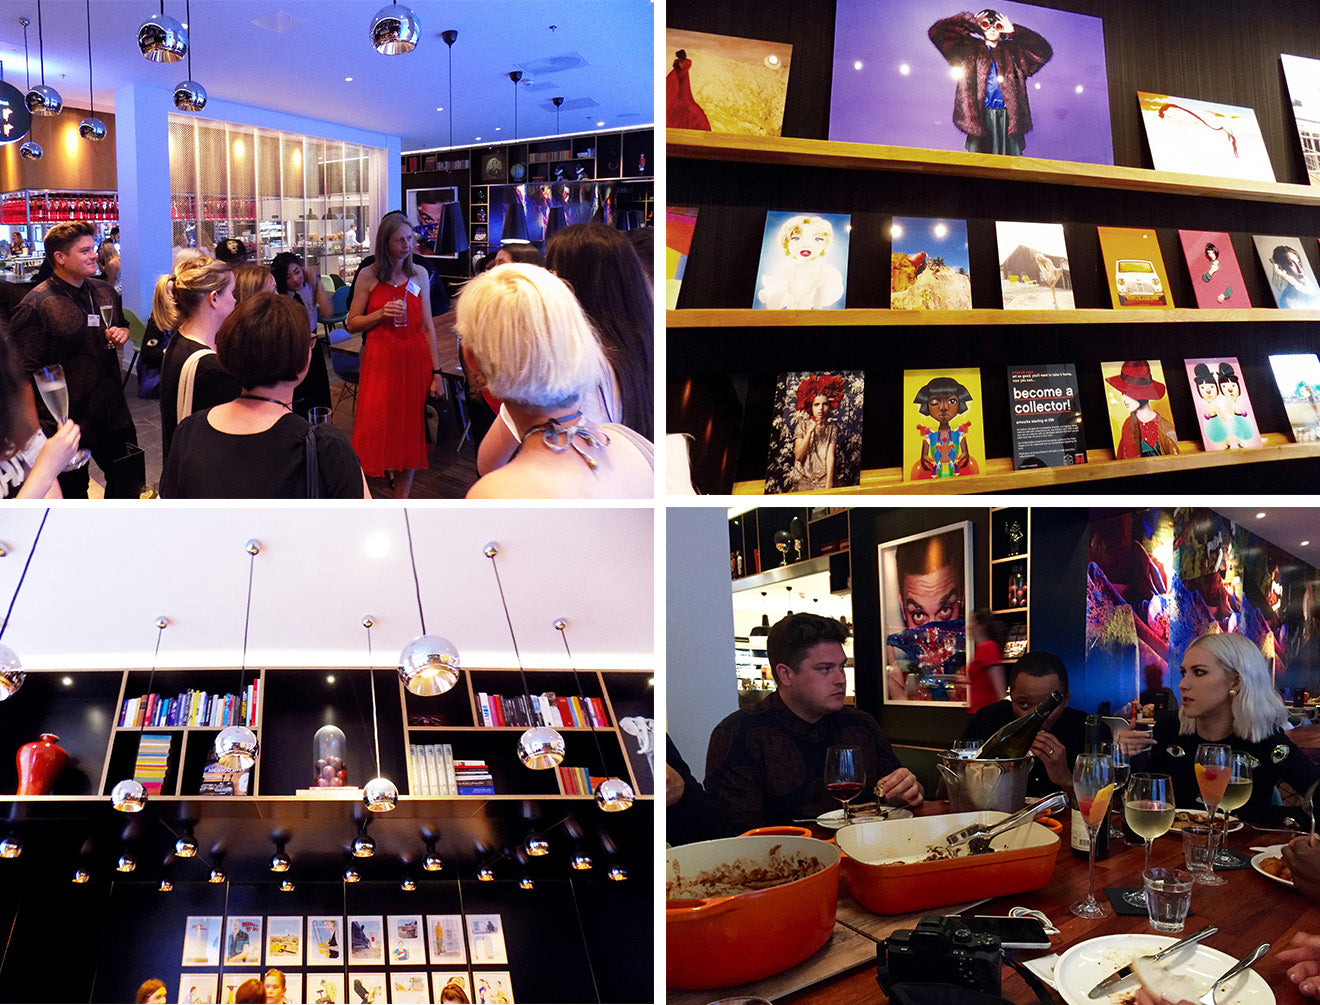 Highlights from the CitizenM bloggers event